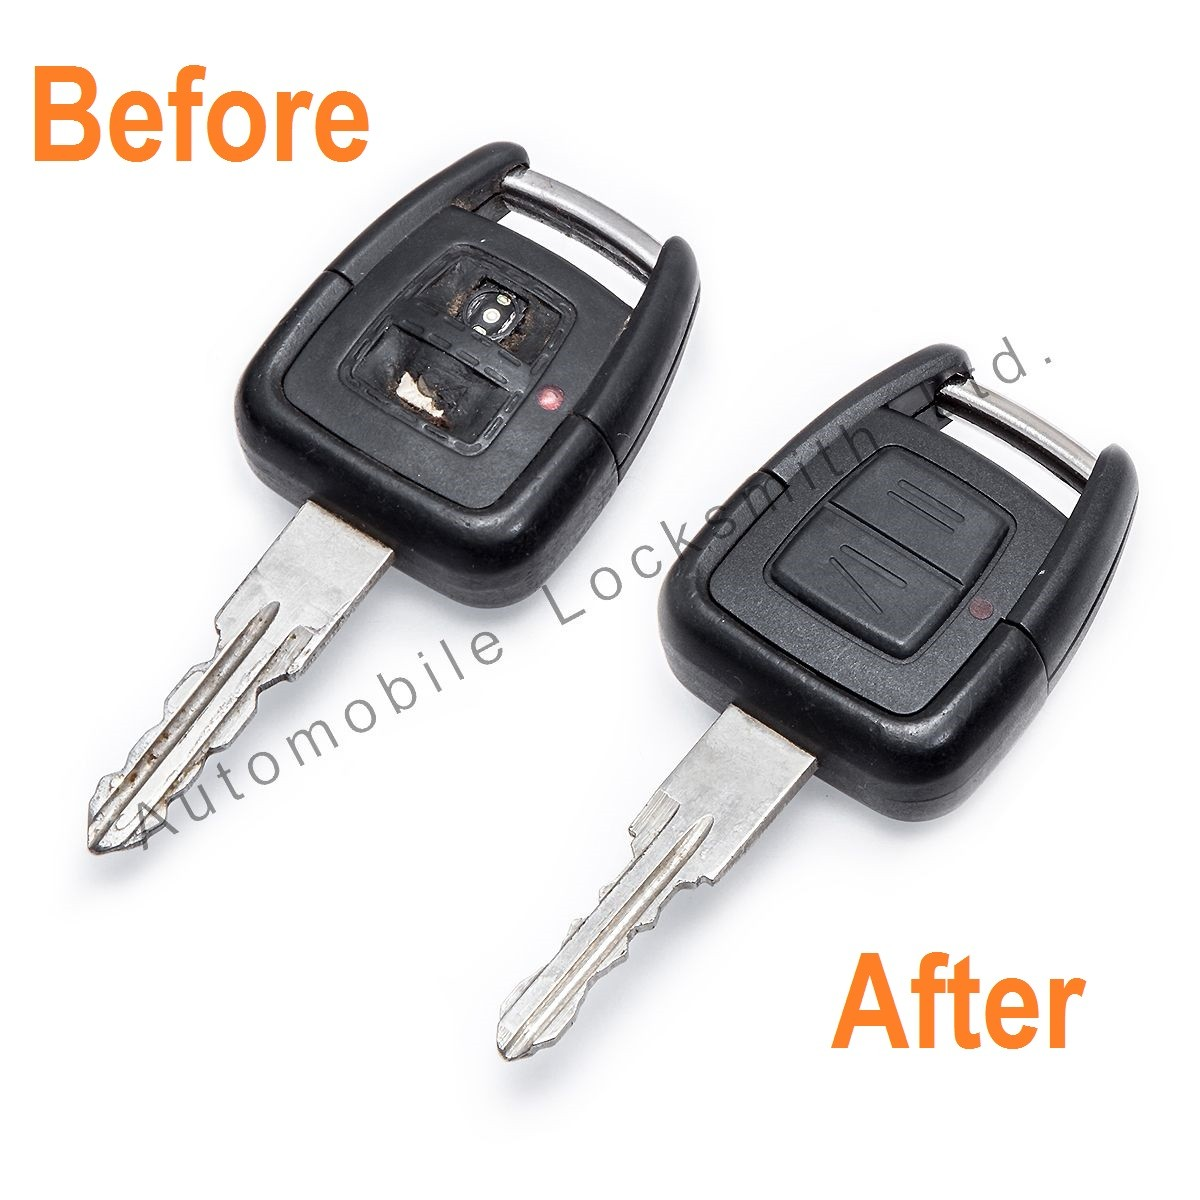 Repair service for Vauxhall Opel 2 button remote key